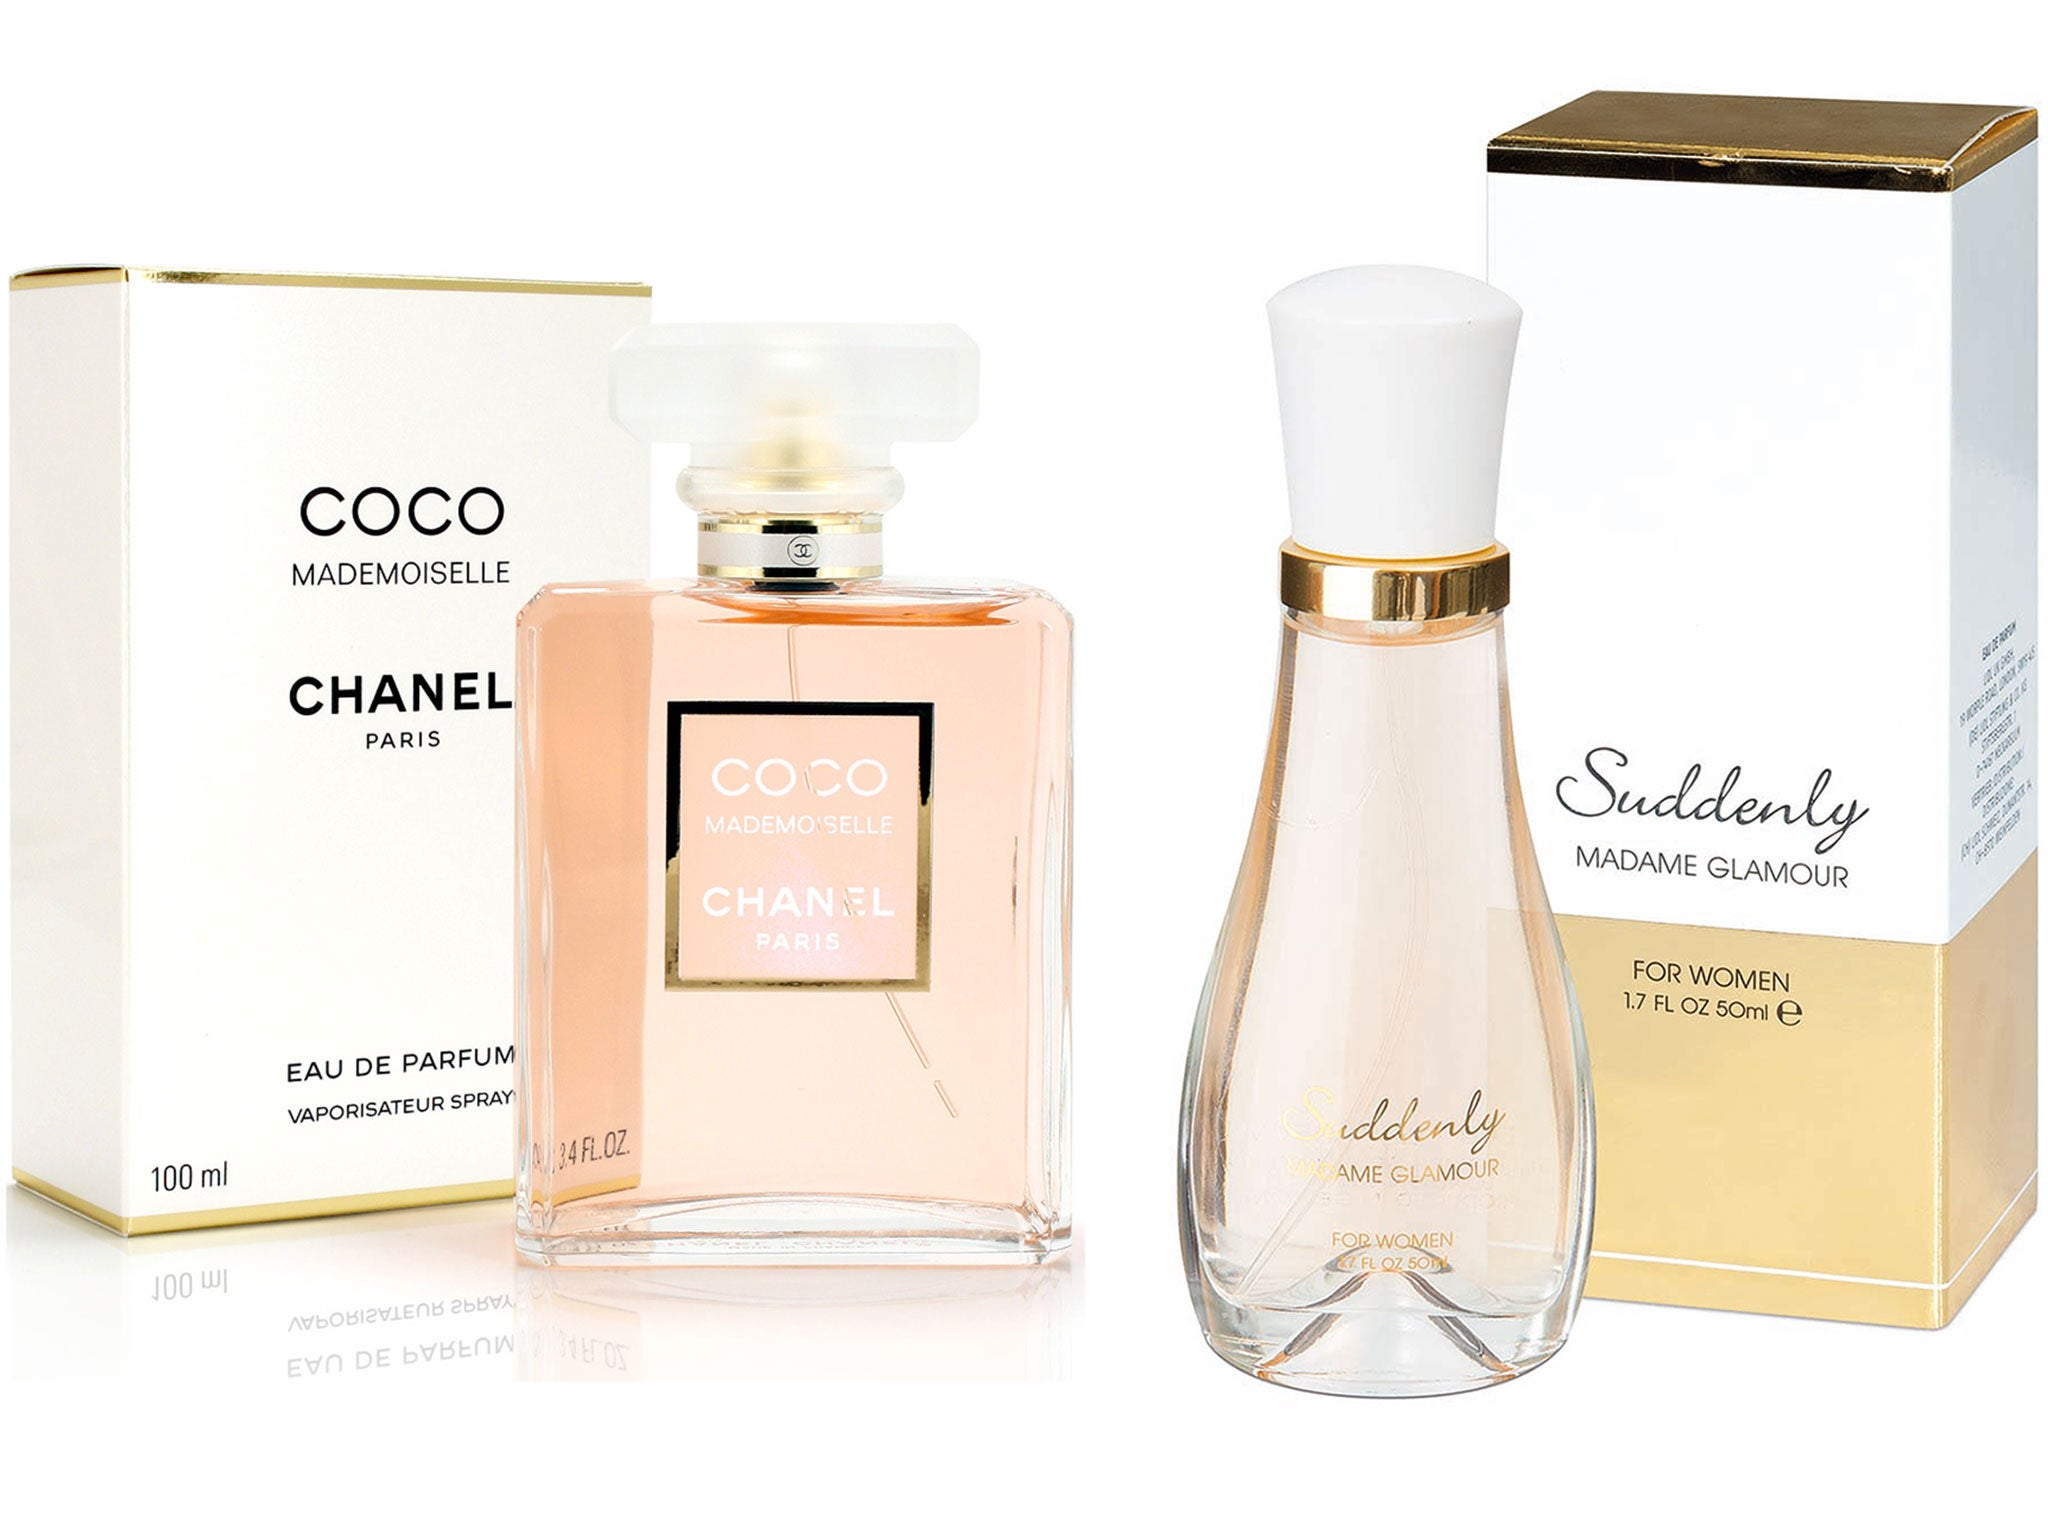 Gabrielle Chanel Perfume A New Fragrance For Women 2017 ...